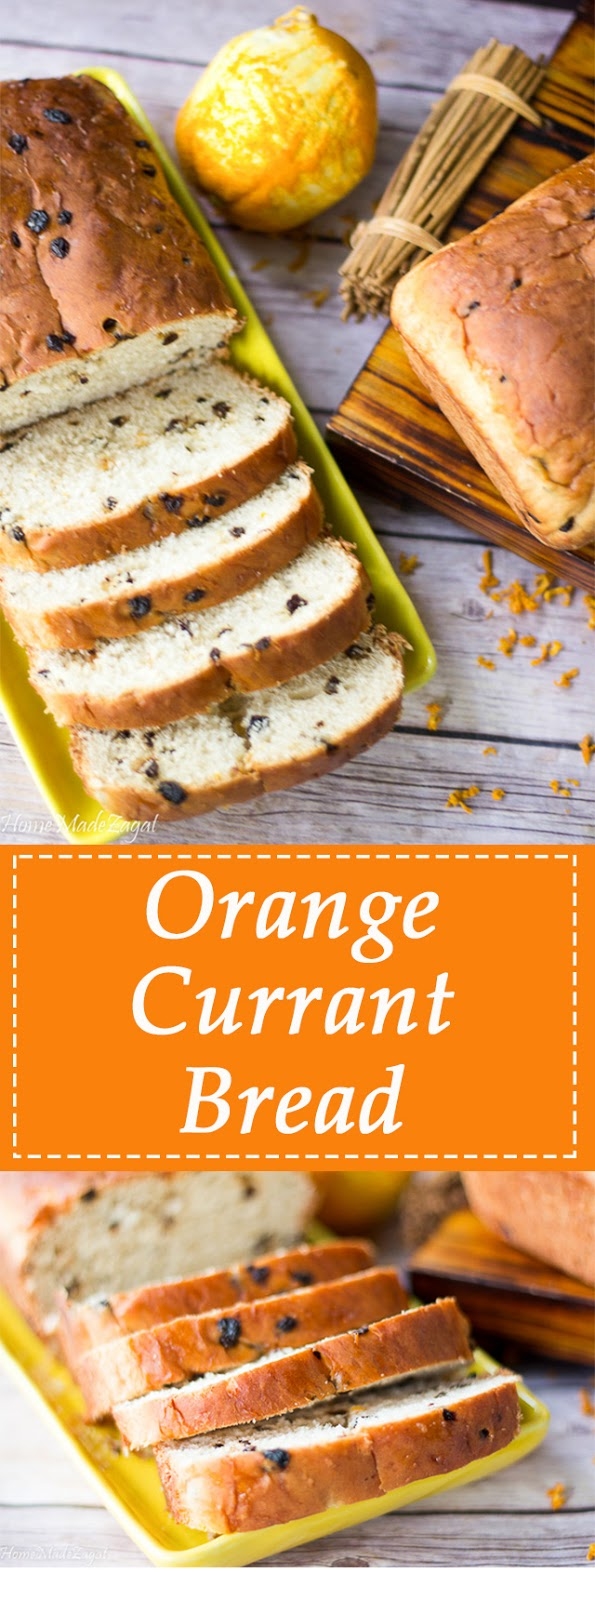 Orange Currant Bread